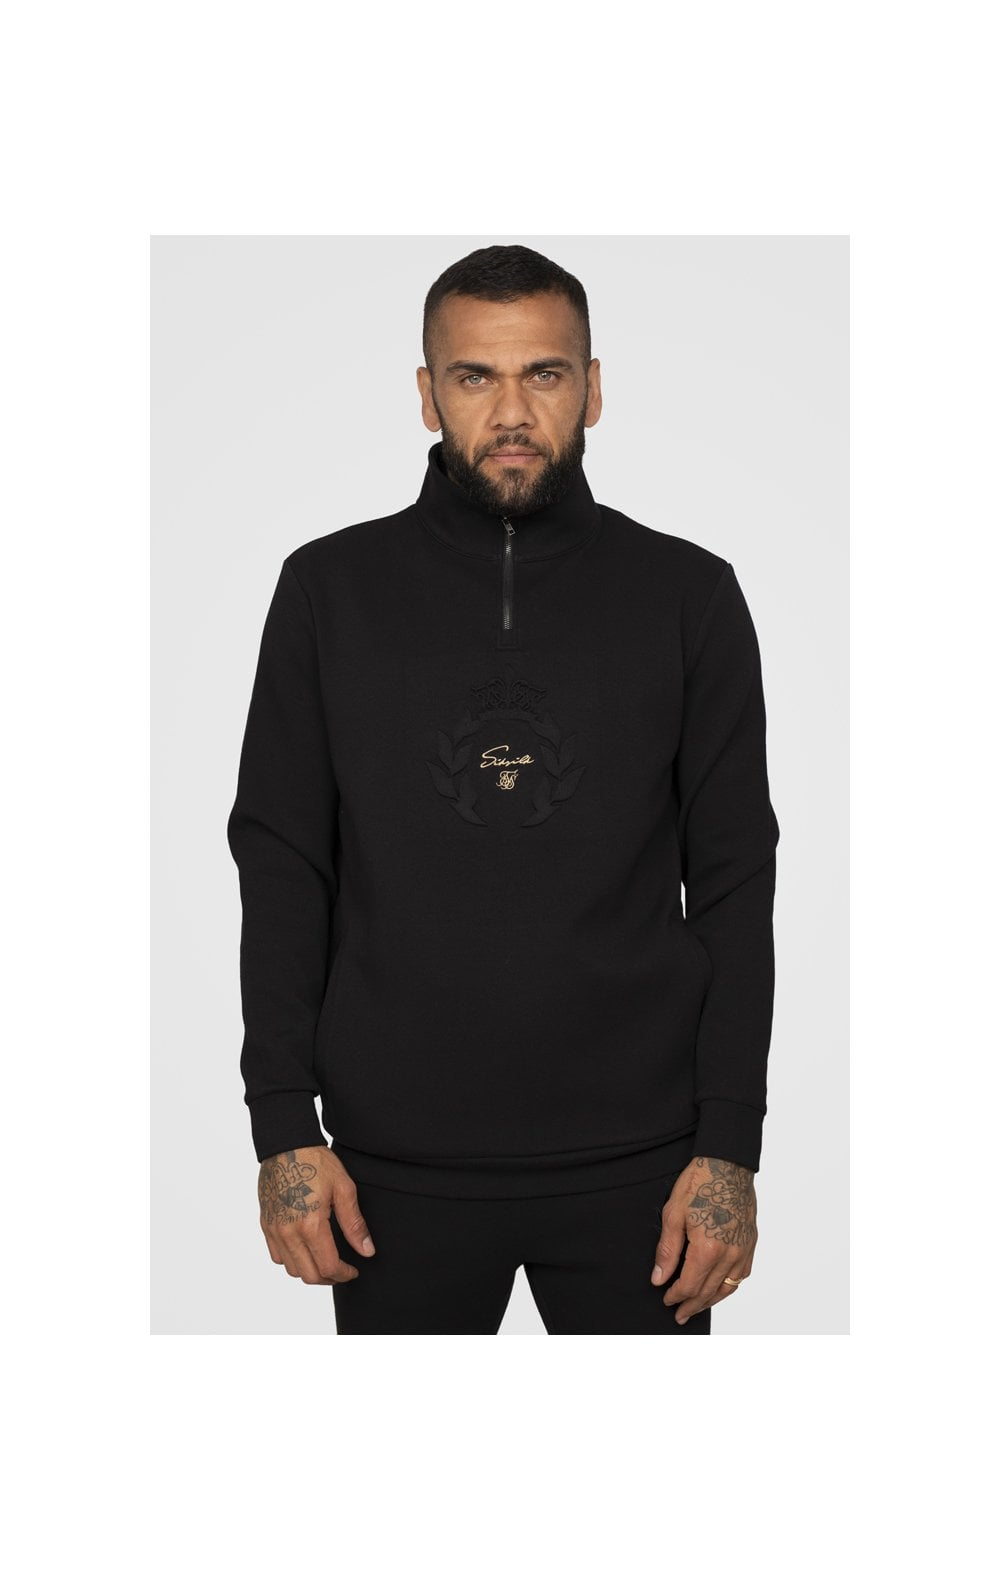 SikSilk x Dani Alves Quarter Zip Prestige Embossed Overhead Track Top – Black